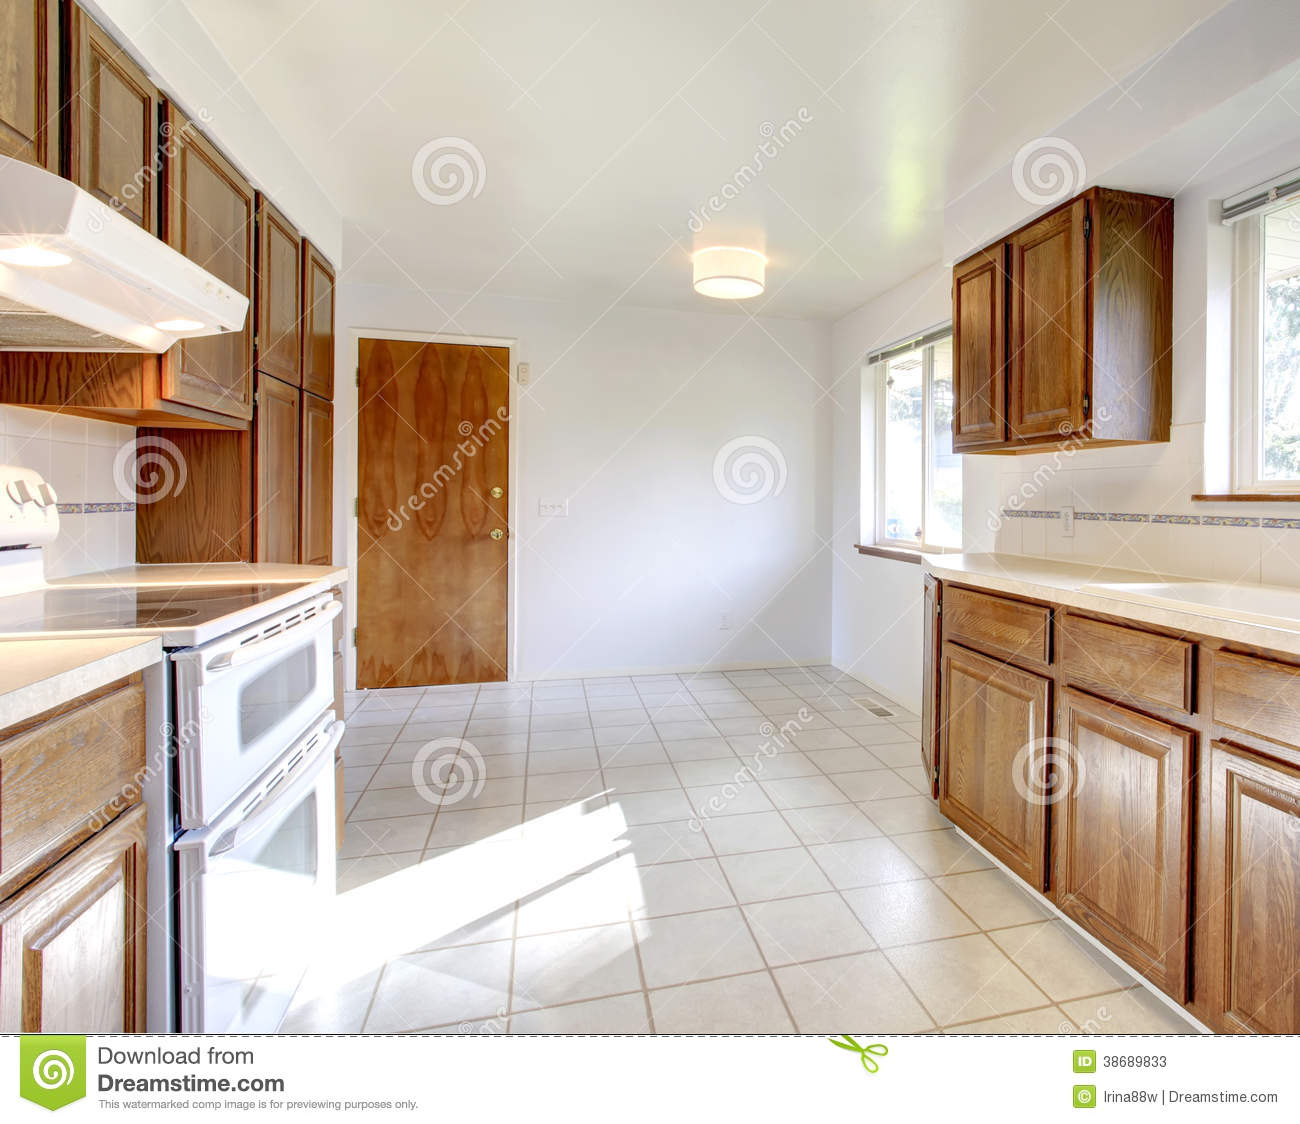 White Kitchen Cabinets Brown Tile Floor: White Kitchen Room With Brown Cabinets Stock Photos